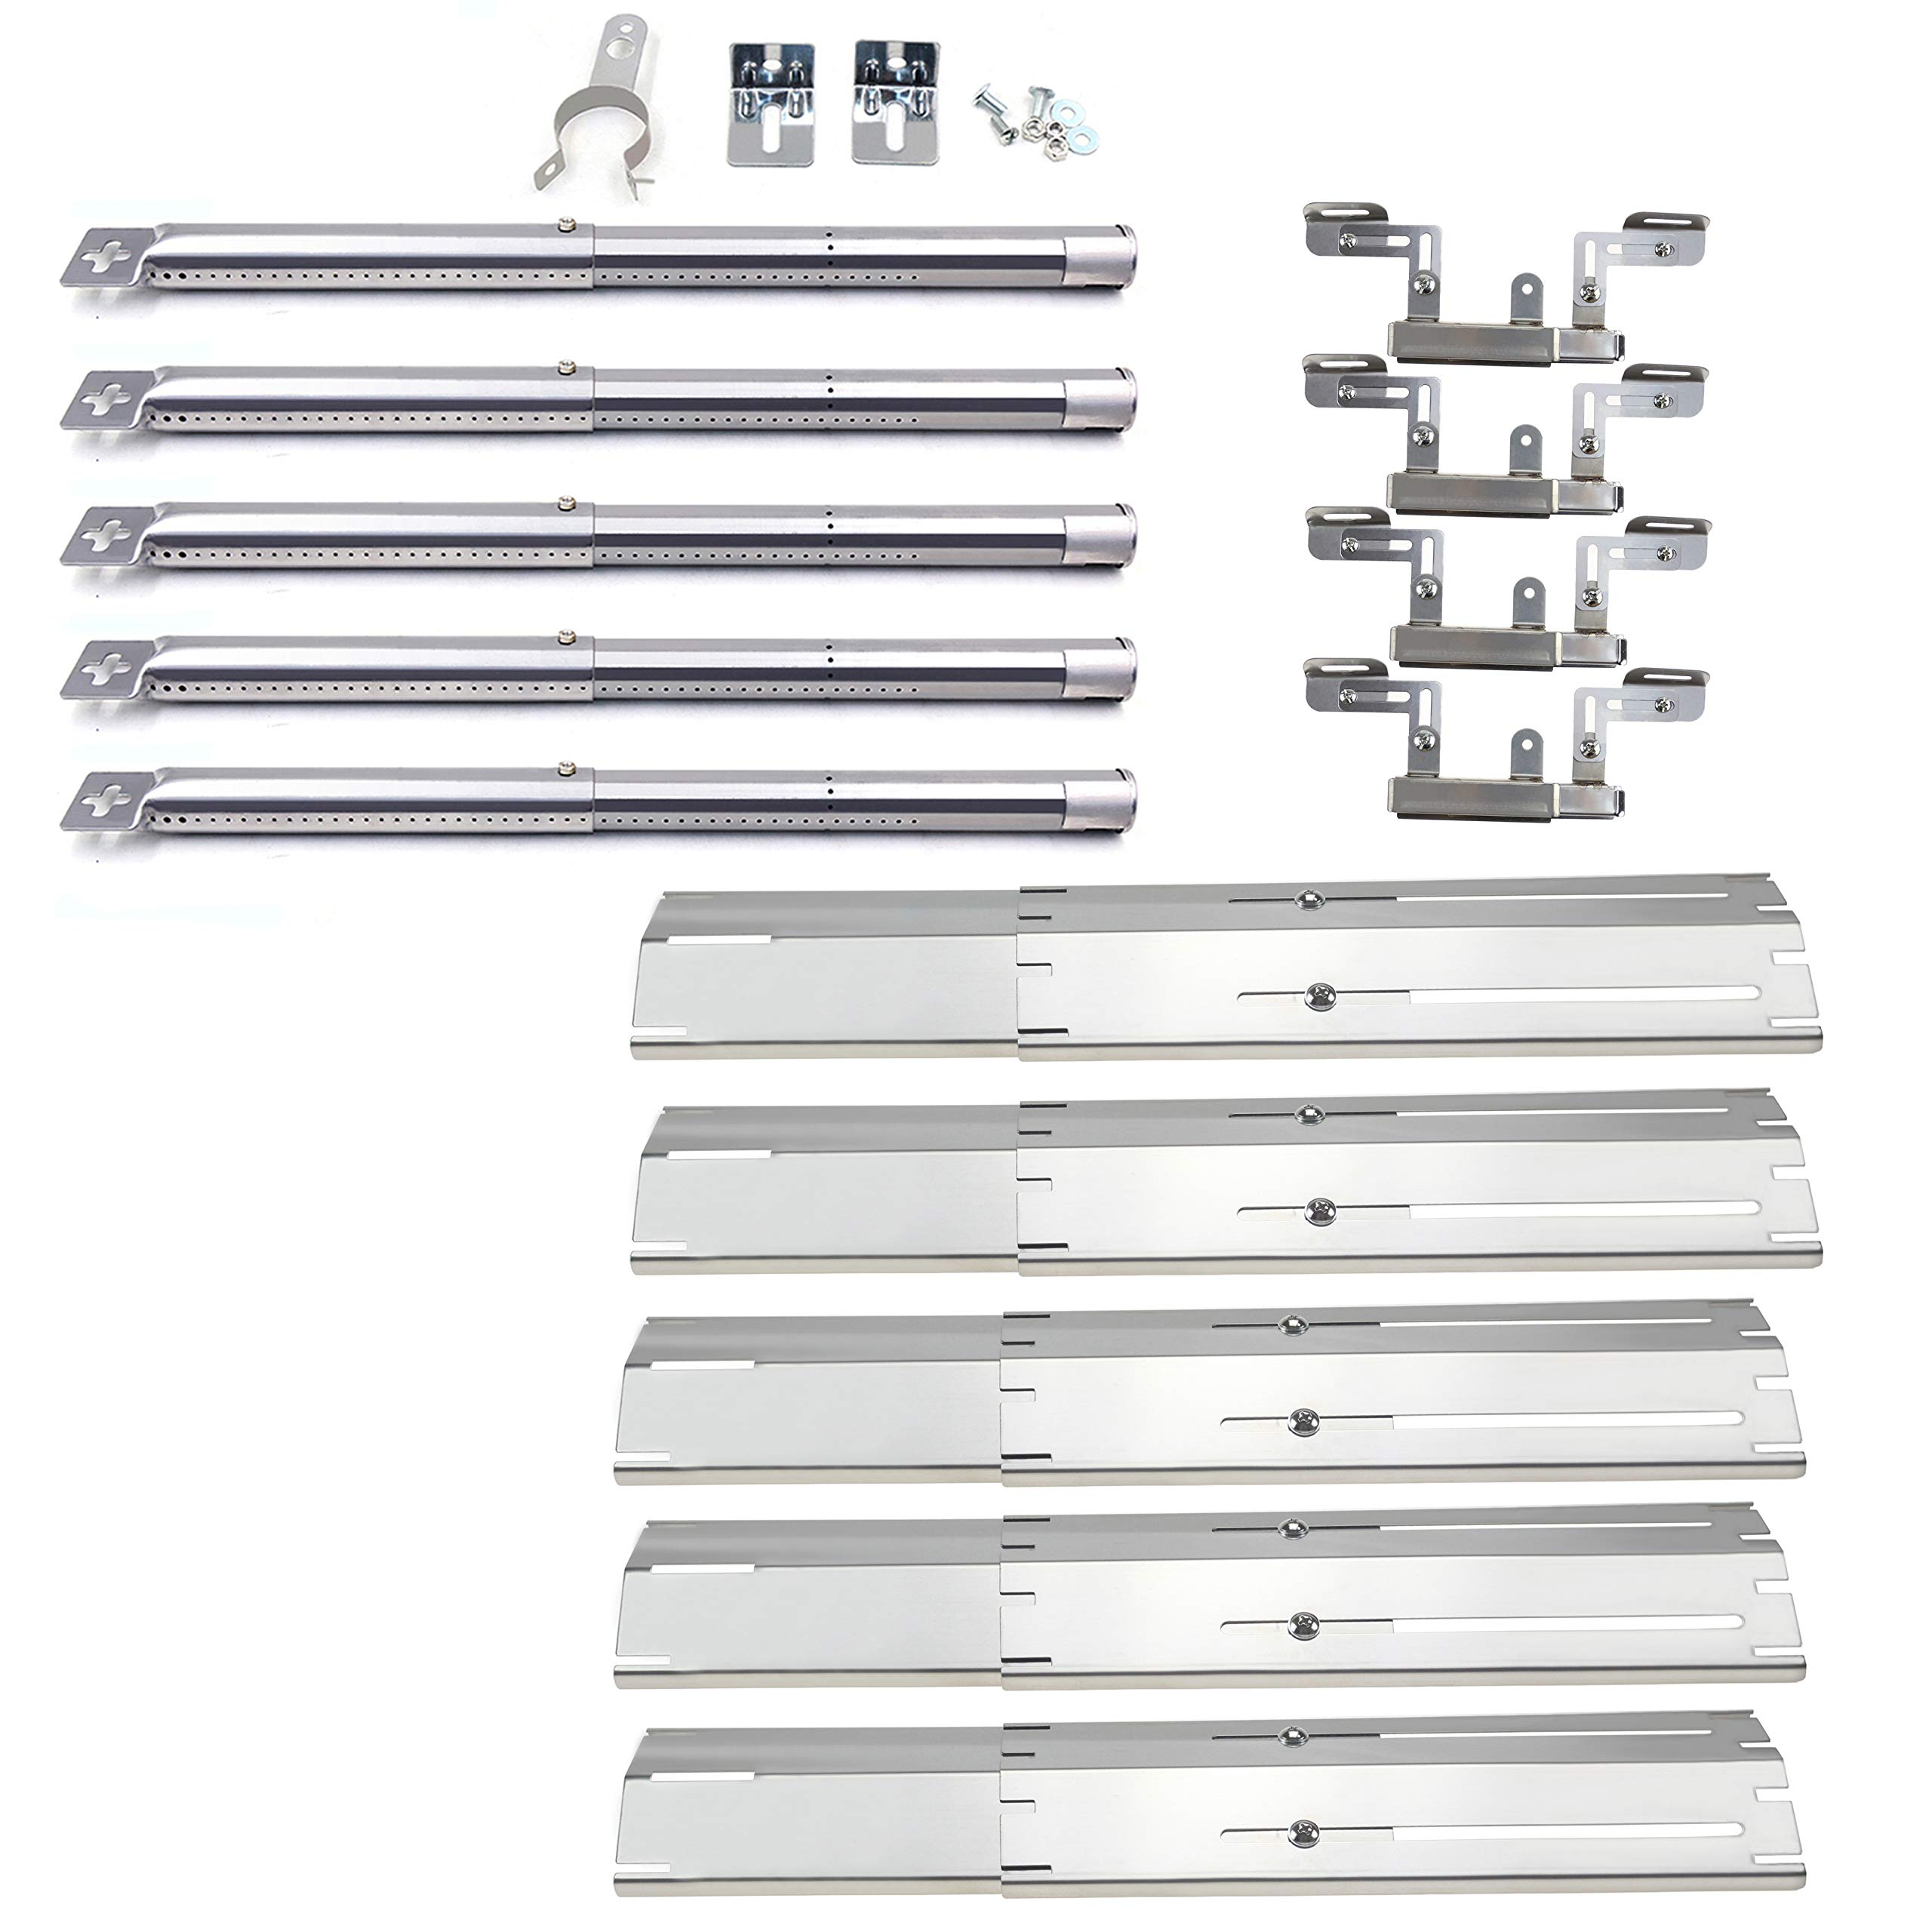 Hisencn Stainless Steel Adjustable Grill Burners, Heat Plates & Crossover Tubes Replacement Parts for Brinkmann 5 Burner Grill Models 810-3660-S, 810-1750-S, 810-4580-S, 810-2511-S